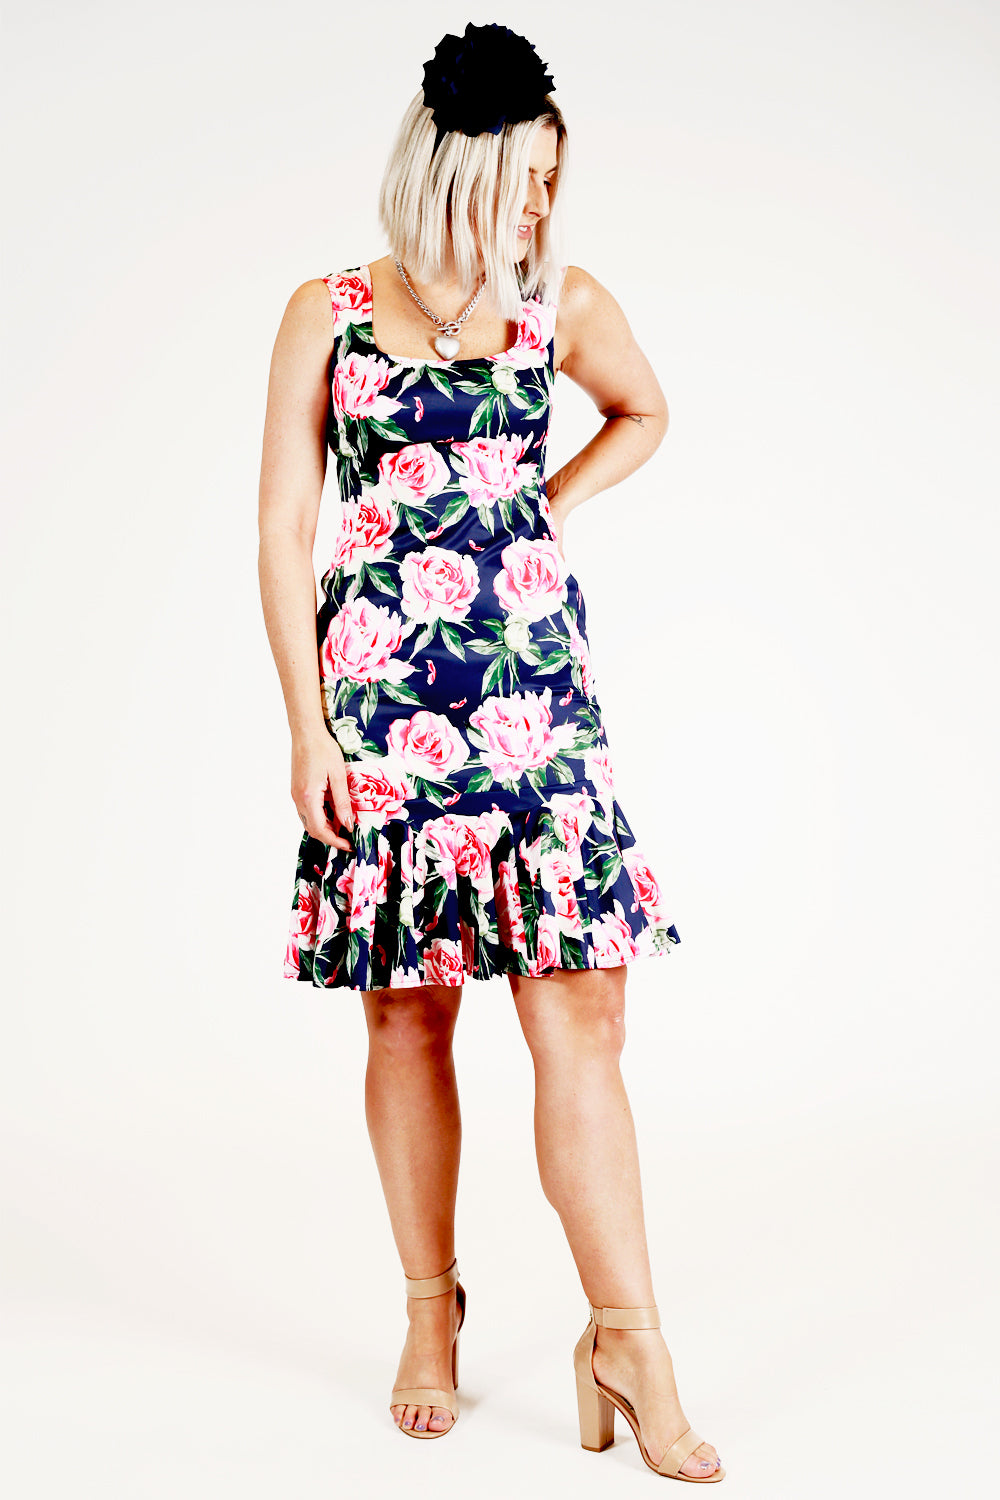 The Lost Lolly Dress - Pink Rose